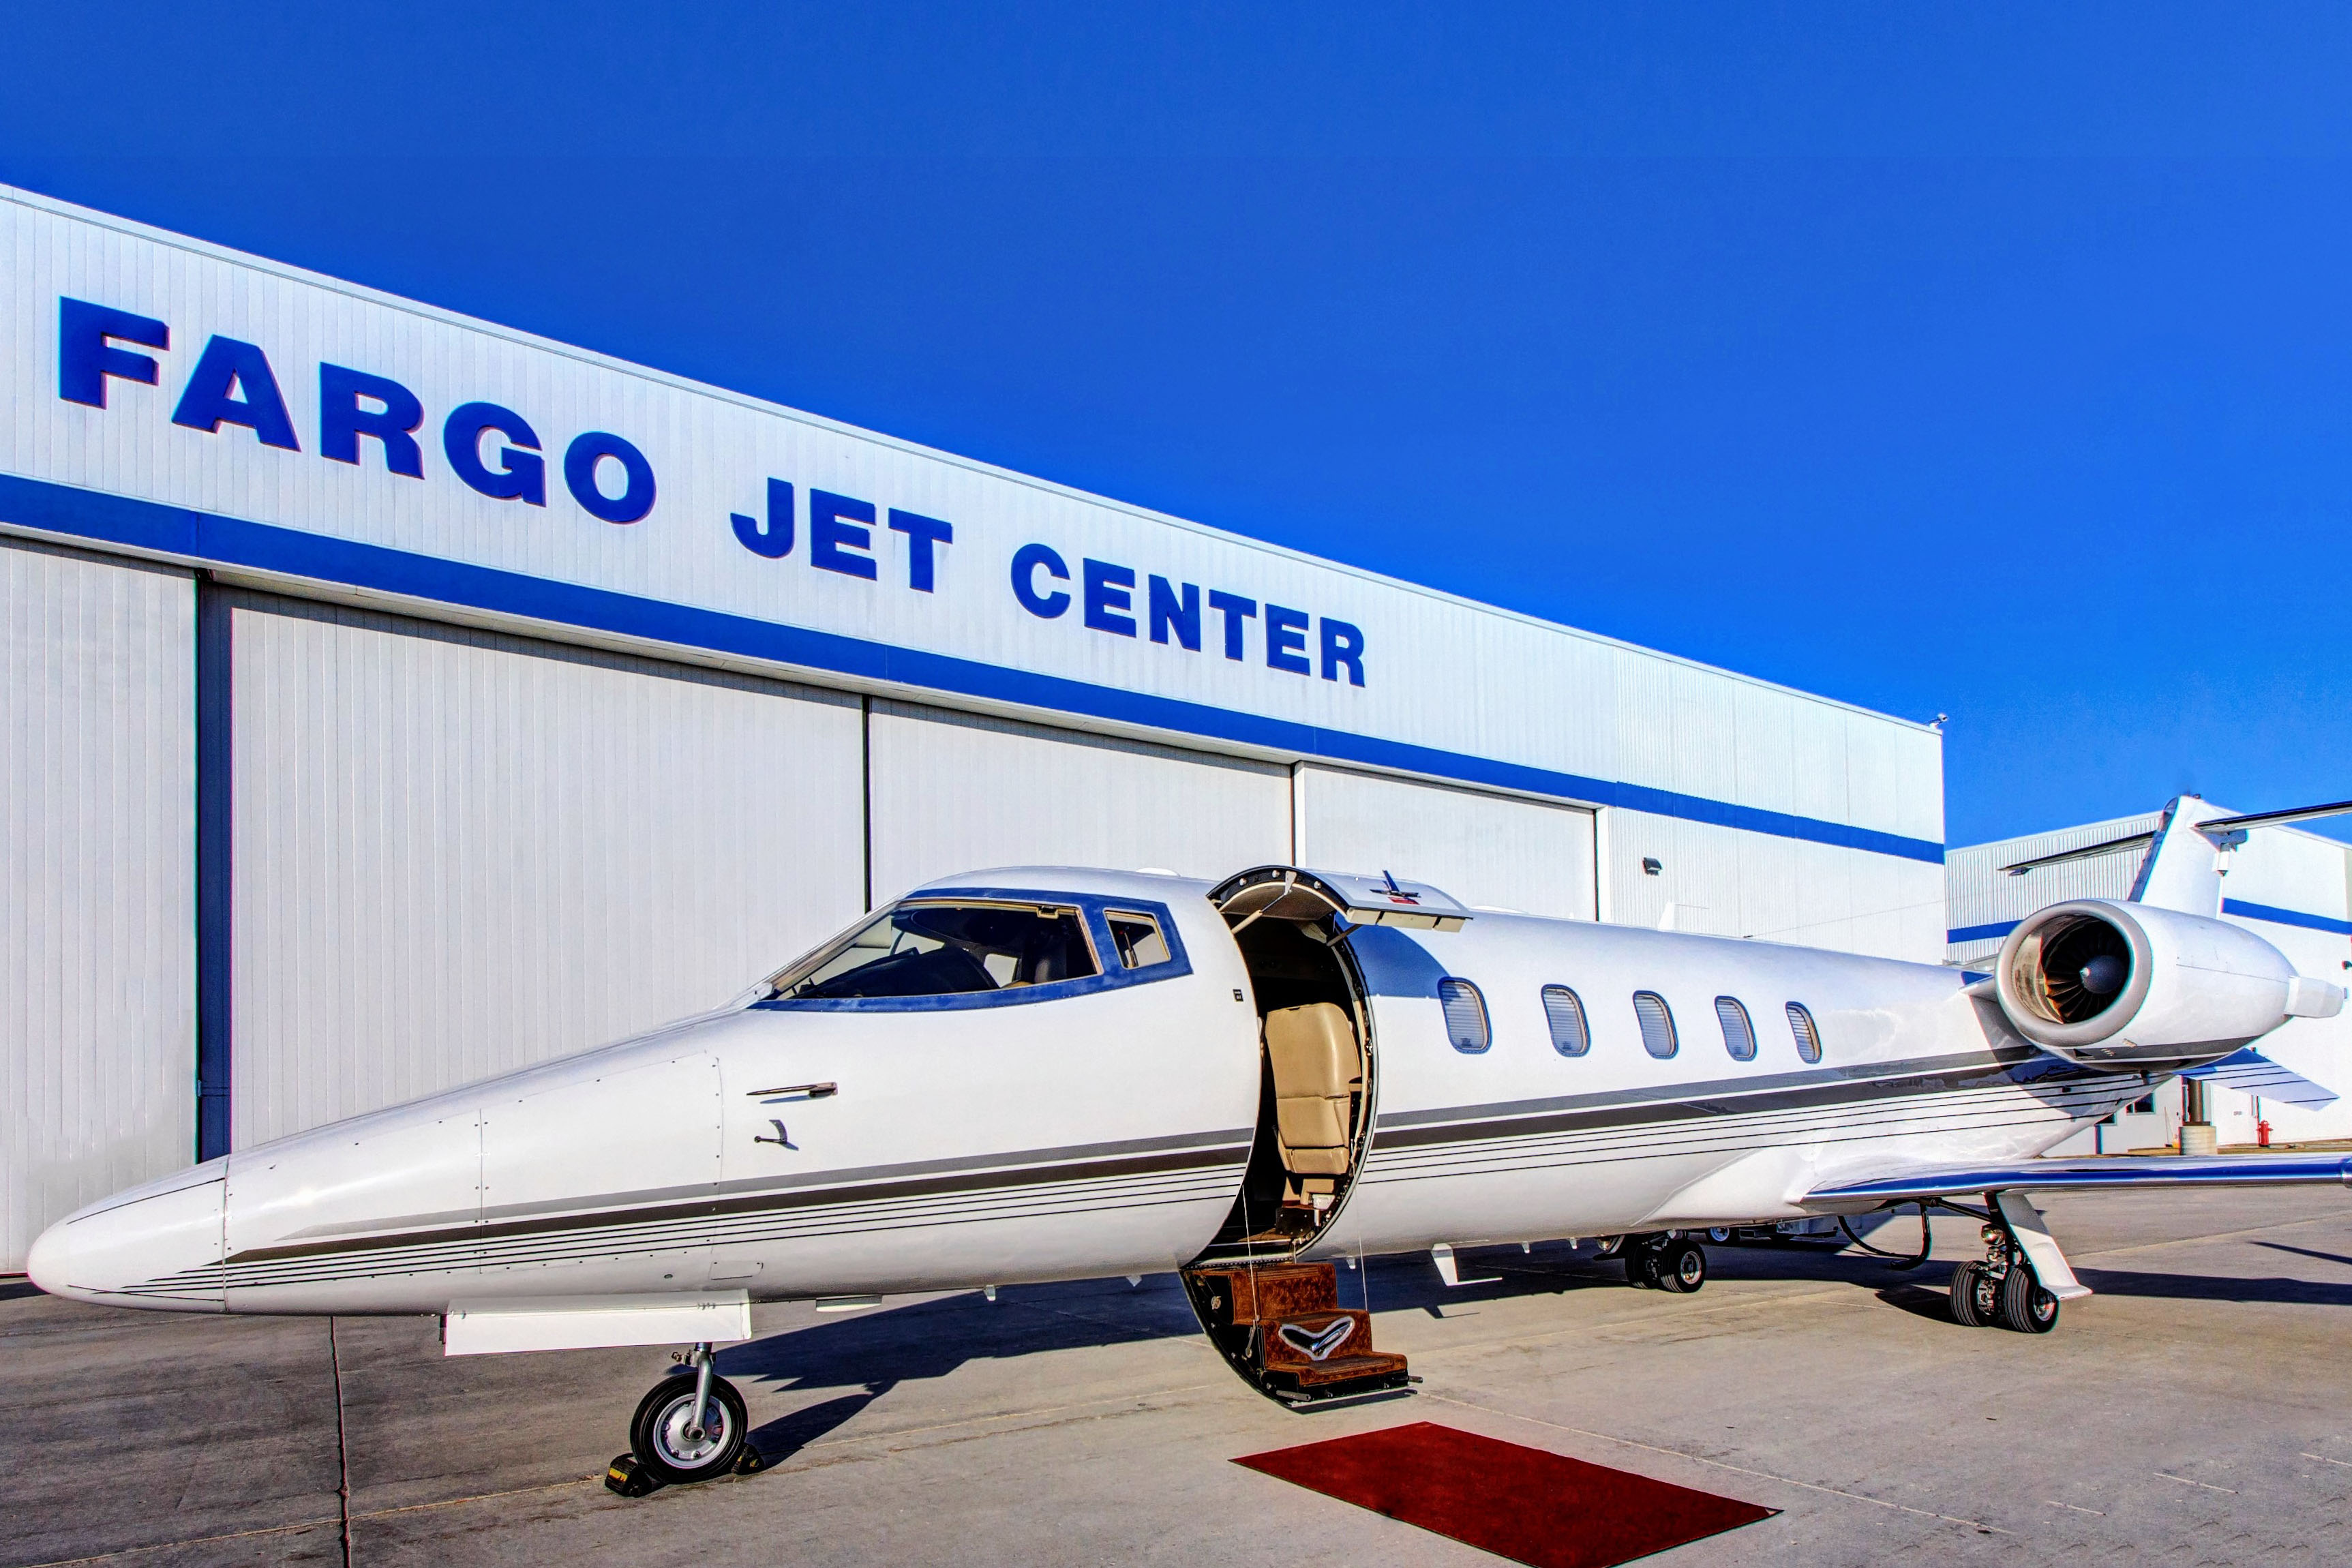 lear-60-charter-fargo-jet-center